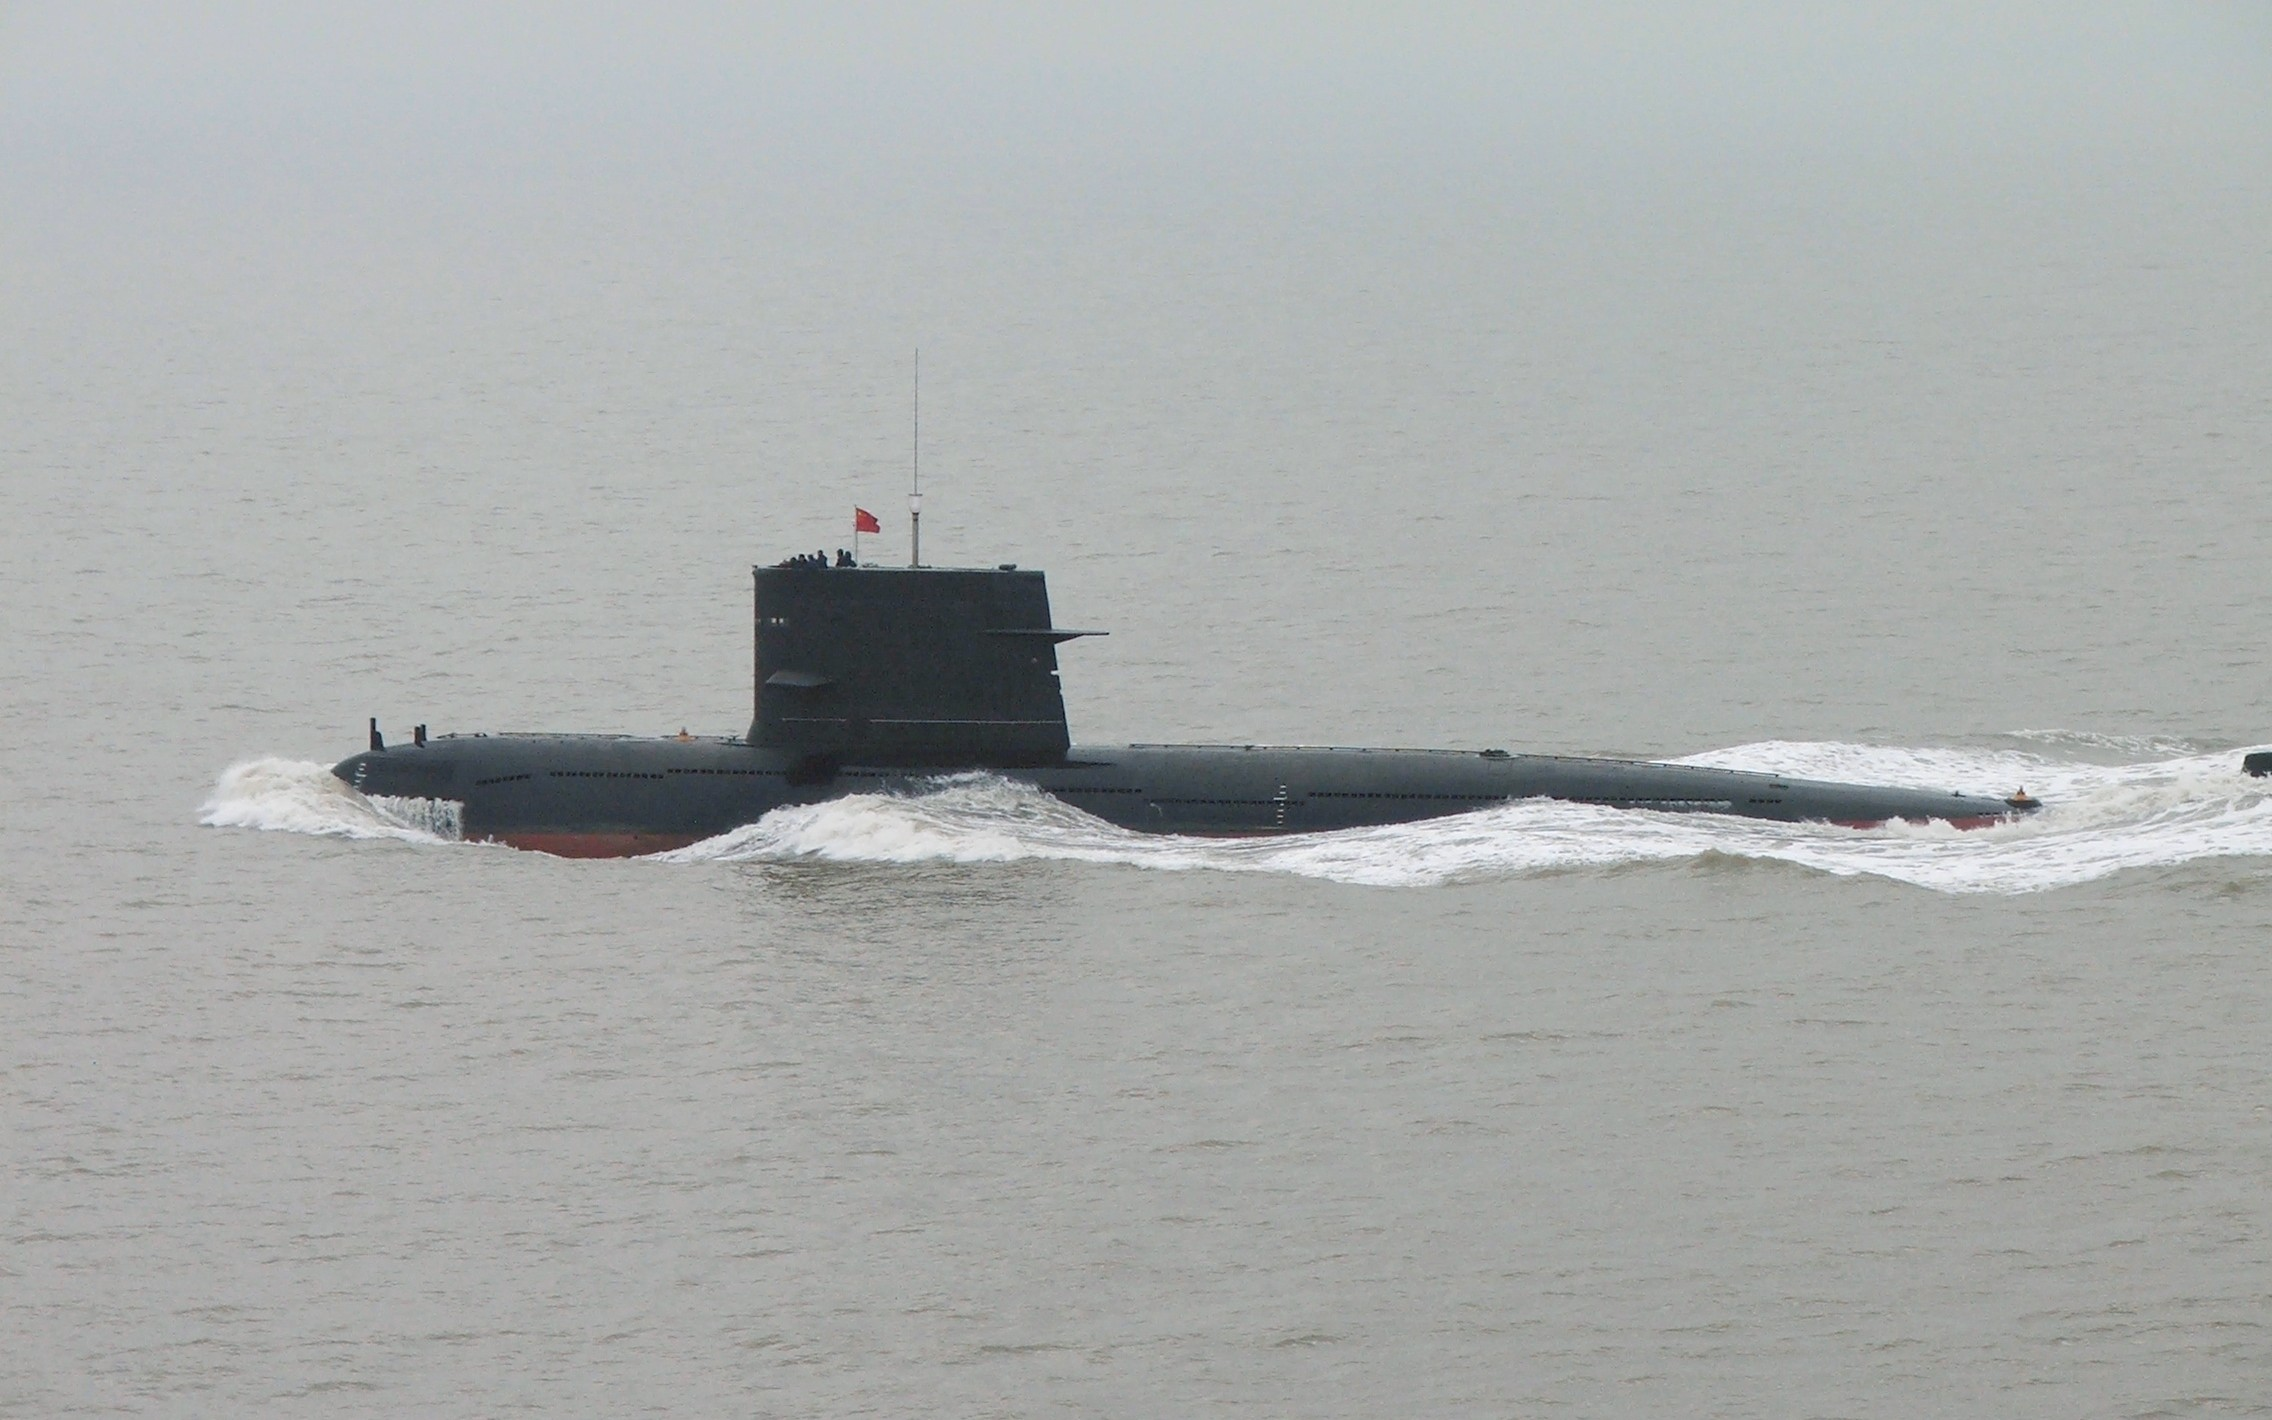 2005 Image of a PLAN Song-class submarine. Via Wikipedia